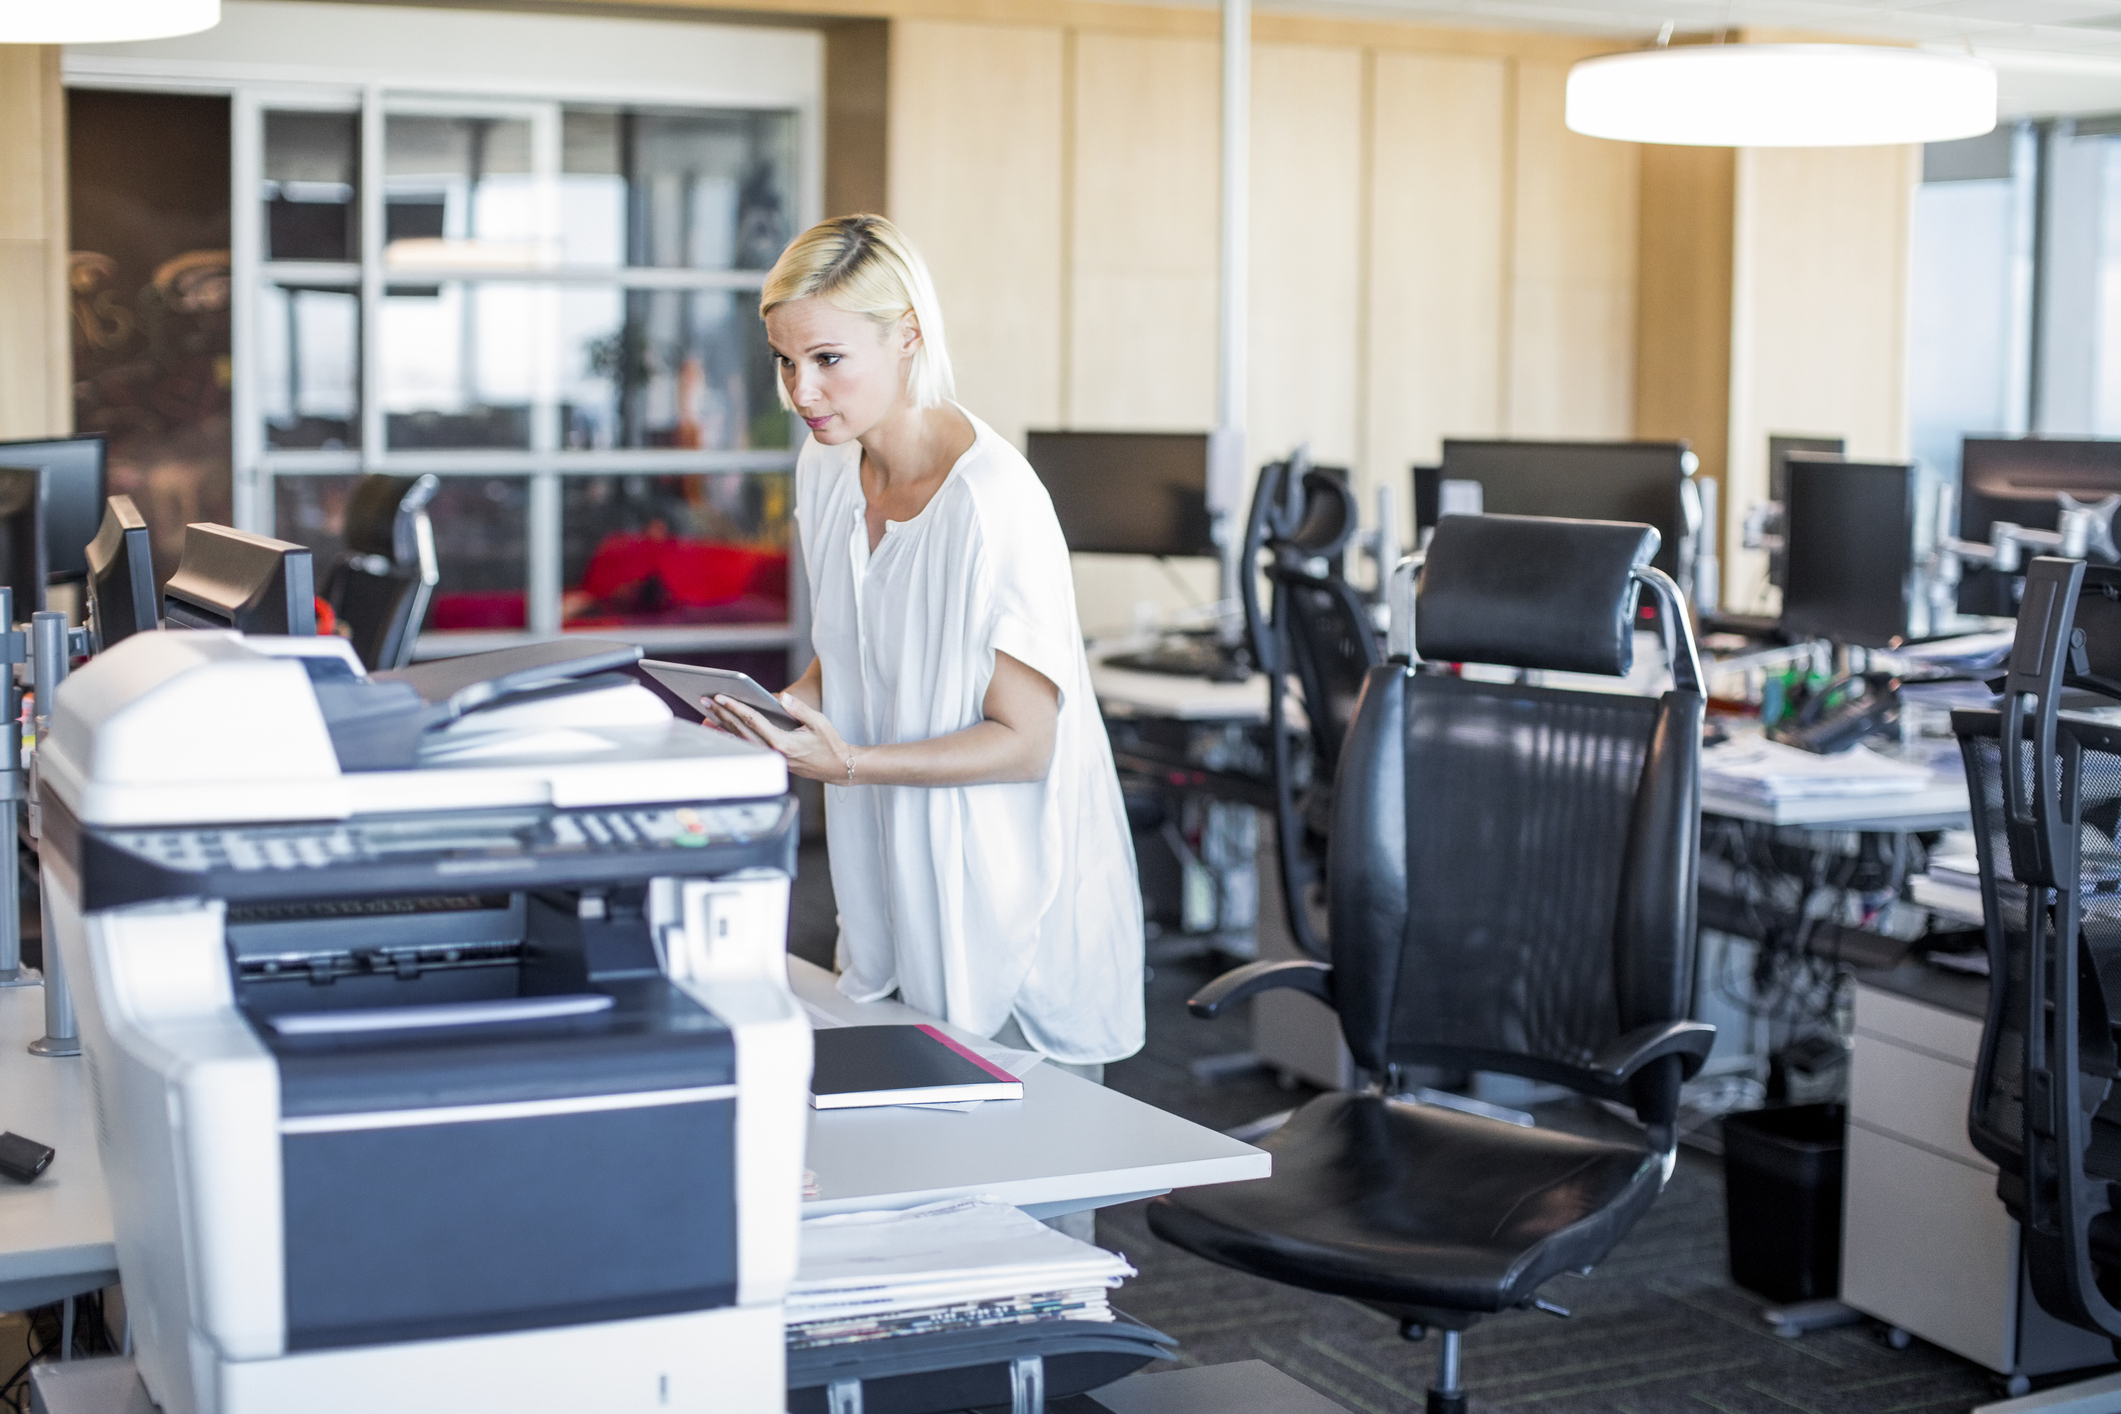 How to Boost Business Productivity Through Technology